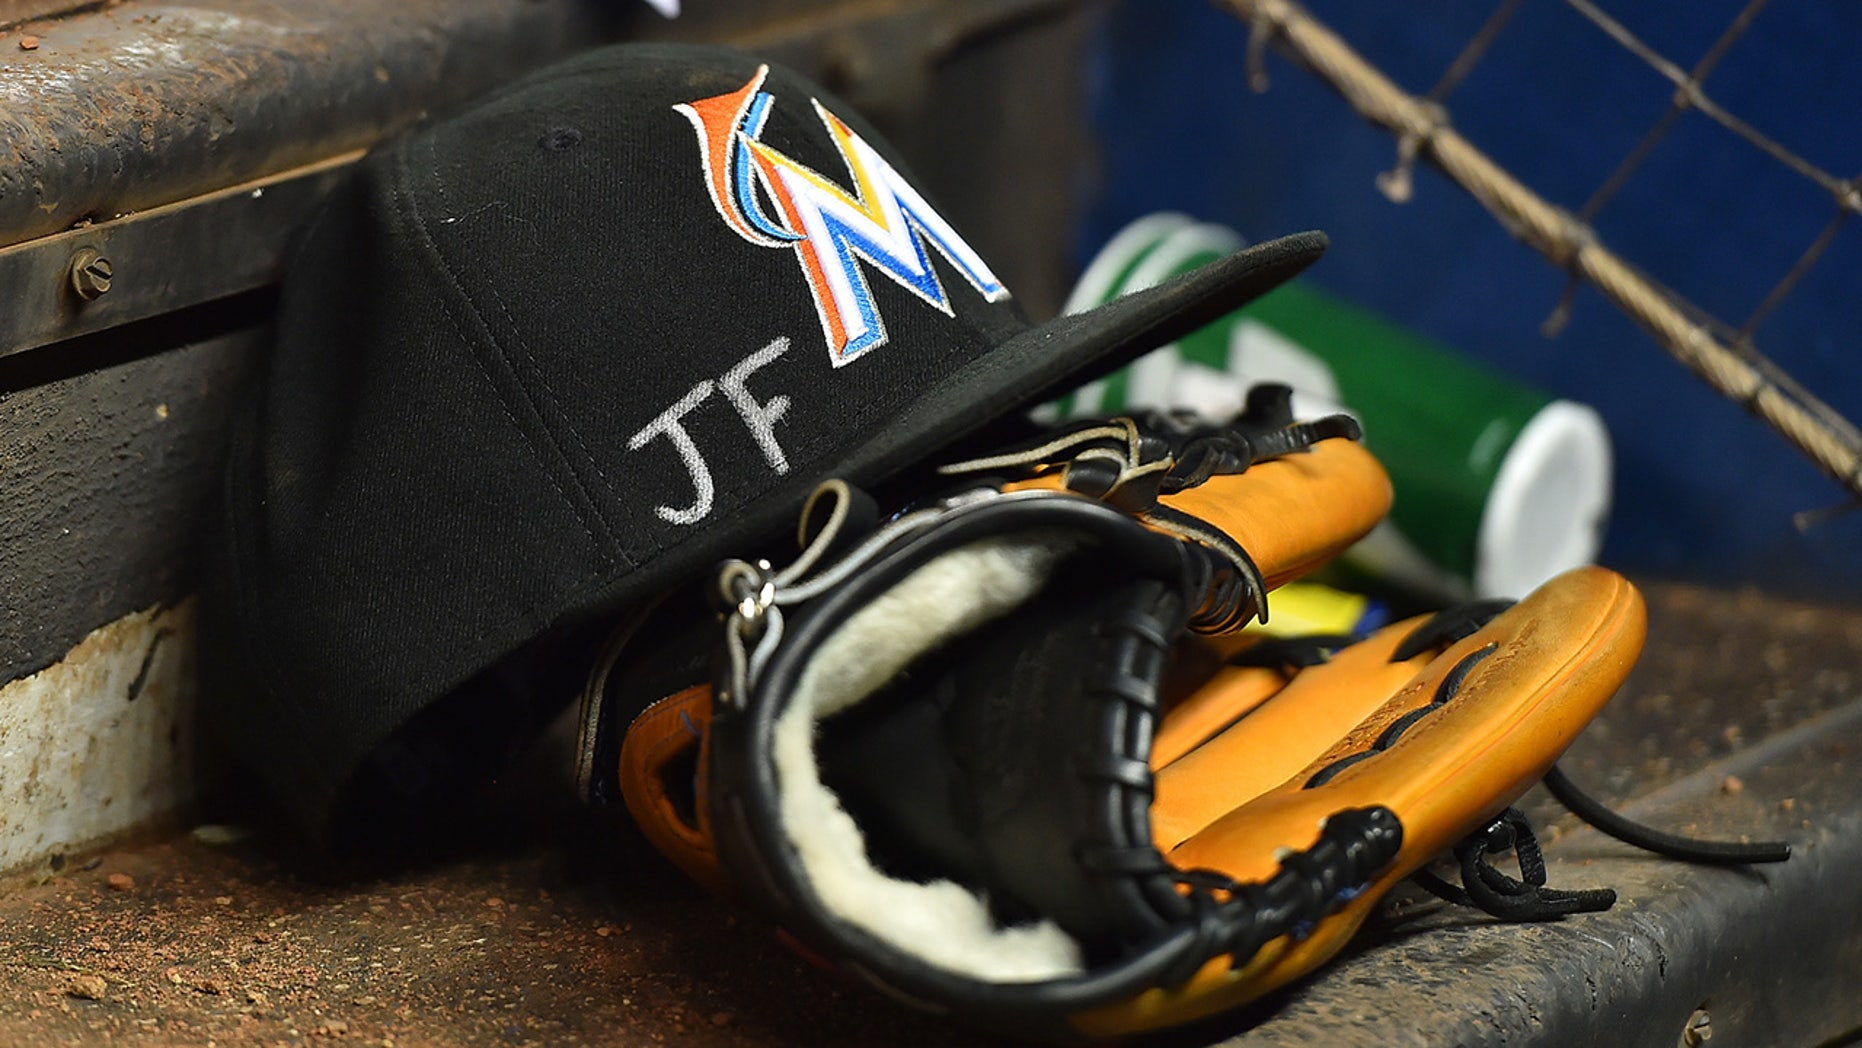 Sept. 27, 2016: A memorial for Jose Fernandez sits on the steps of the dugout in the game against the New York Mets at Marlins Park.